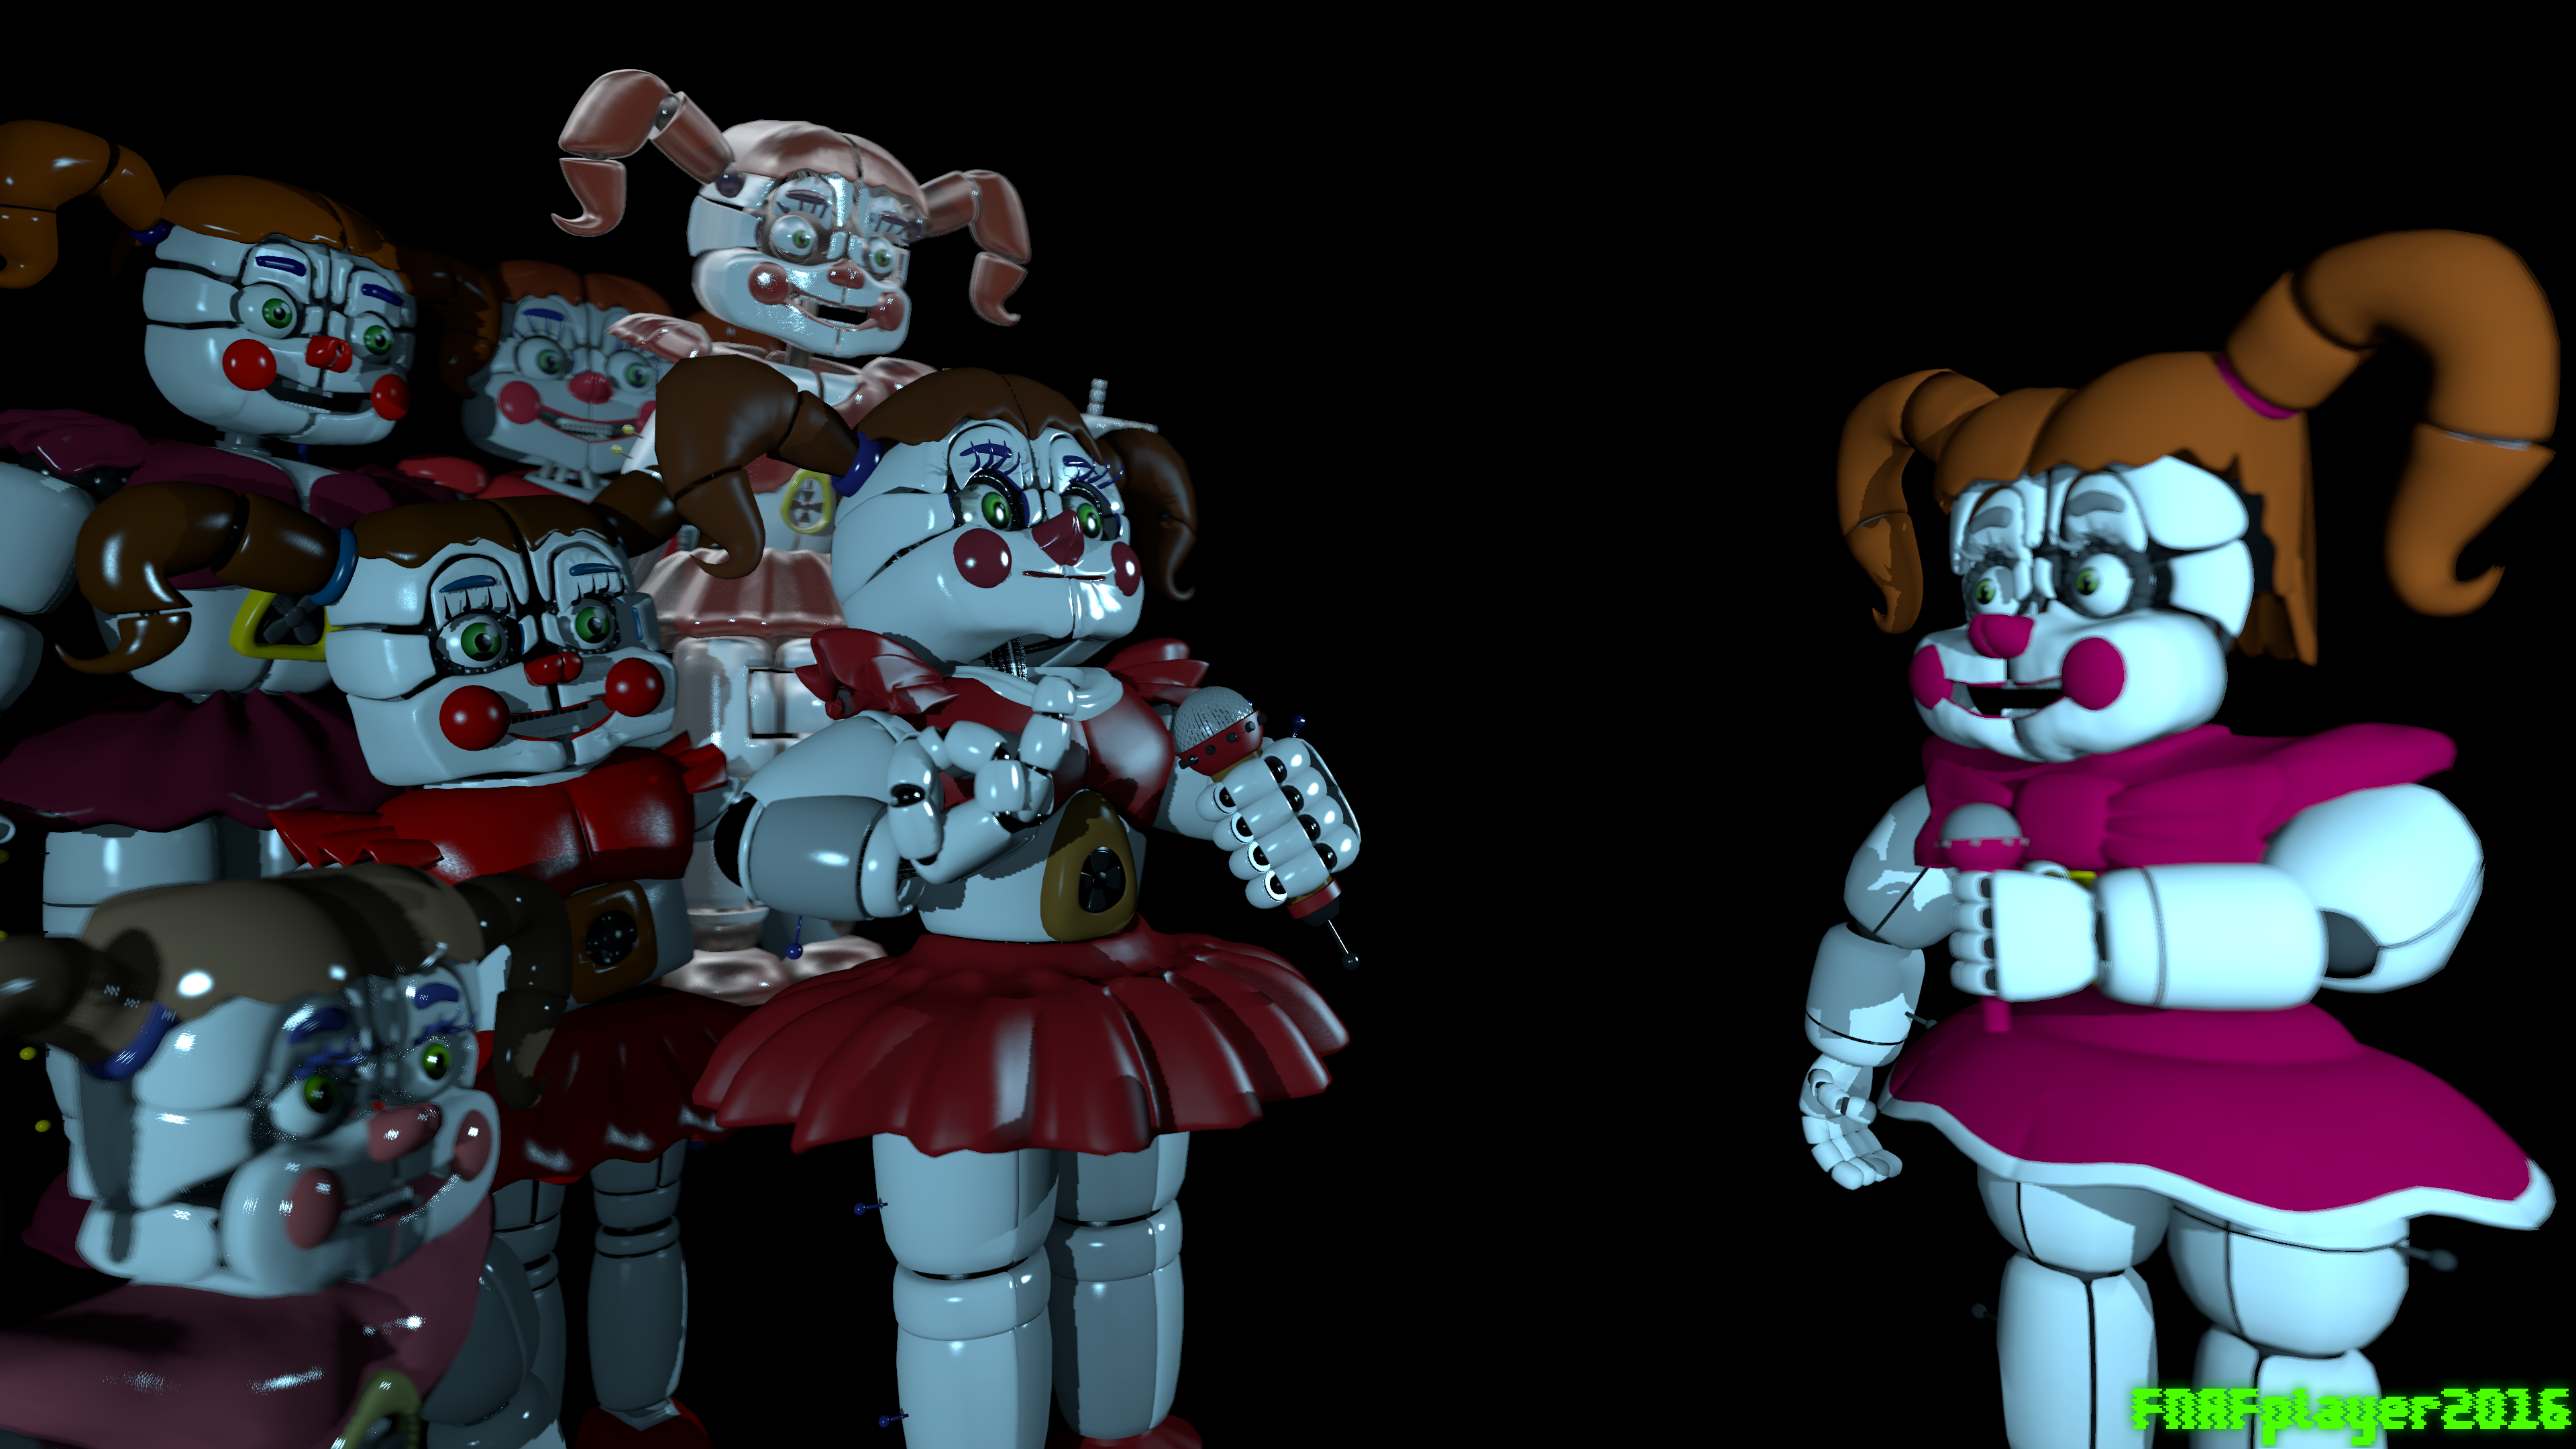 [FNAF SFM] Every Circus Baby Model In The Workshop By